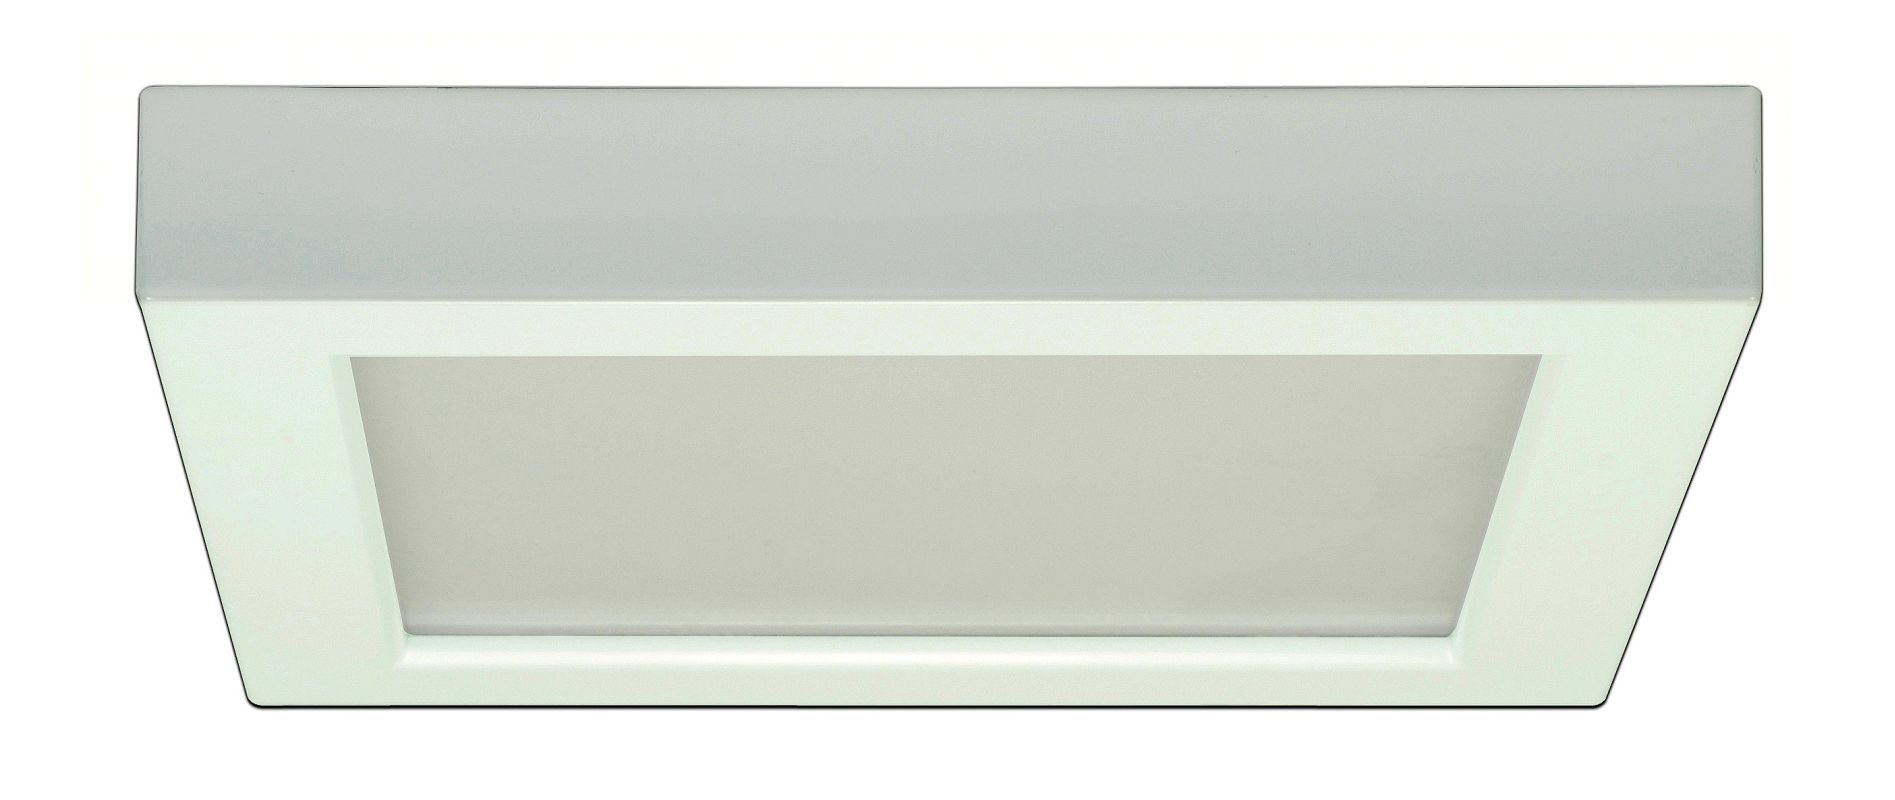 Nuvo Lighting S9361 Blink 1 Light LED Energy Star Flush Mount Ceiling